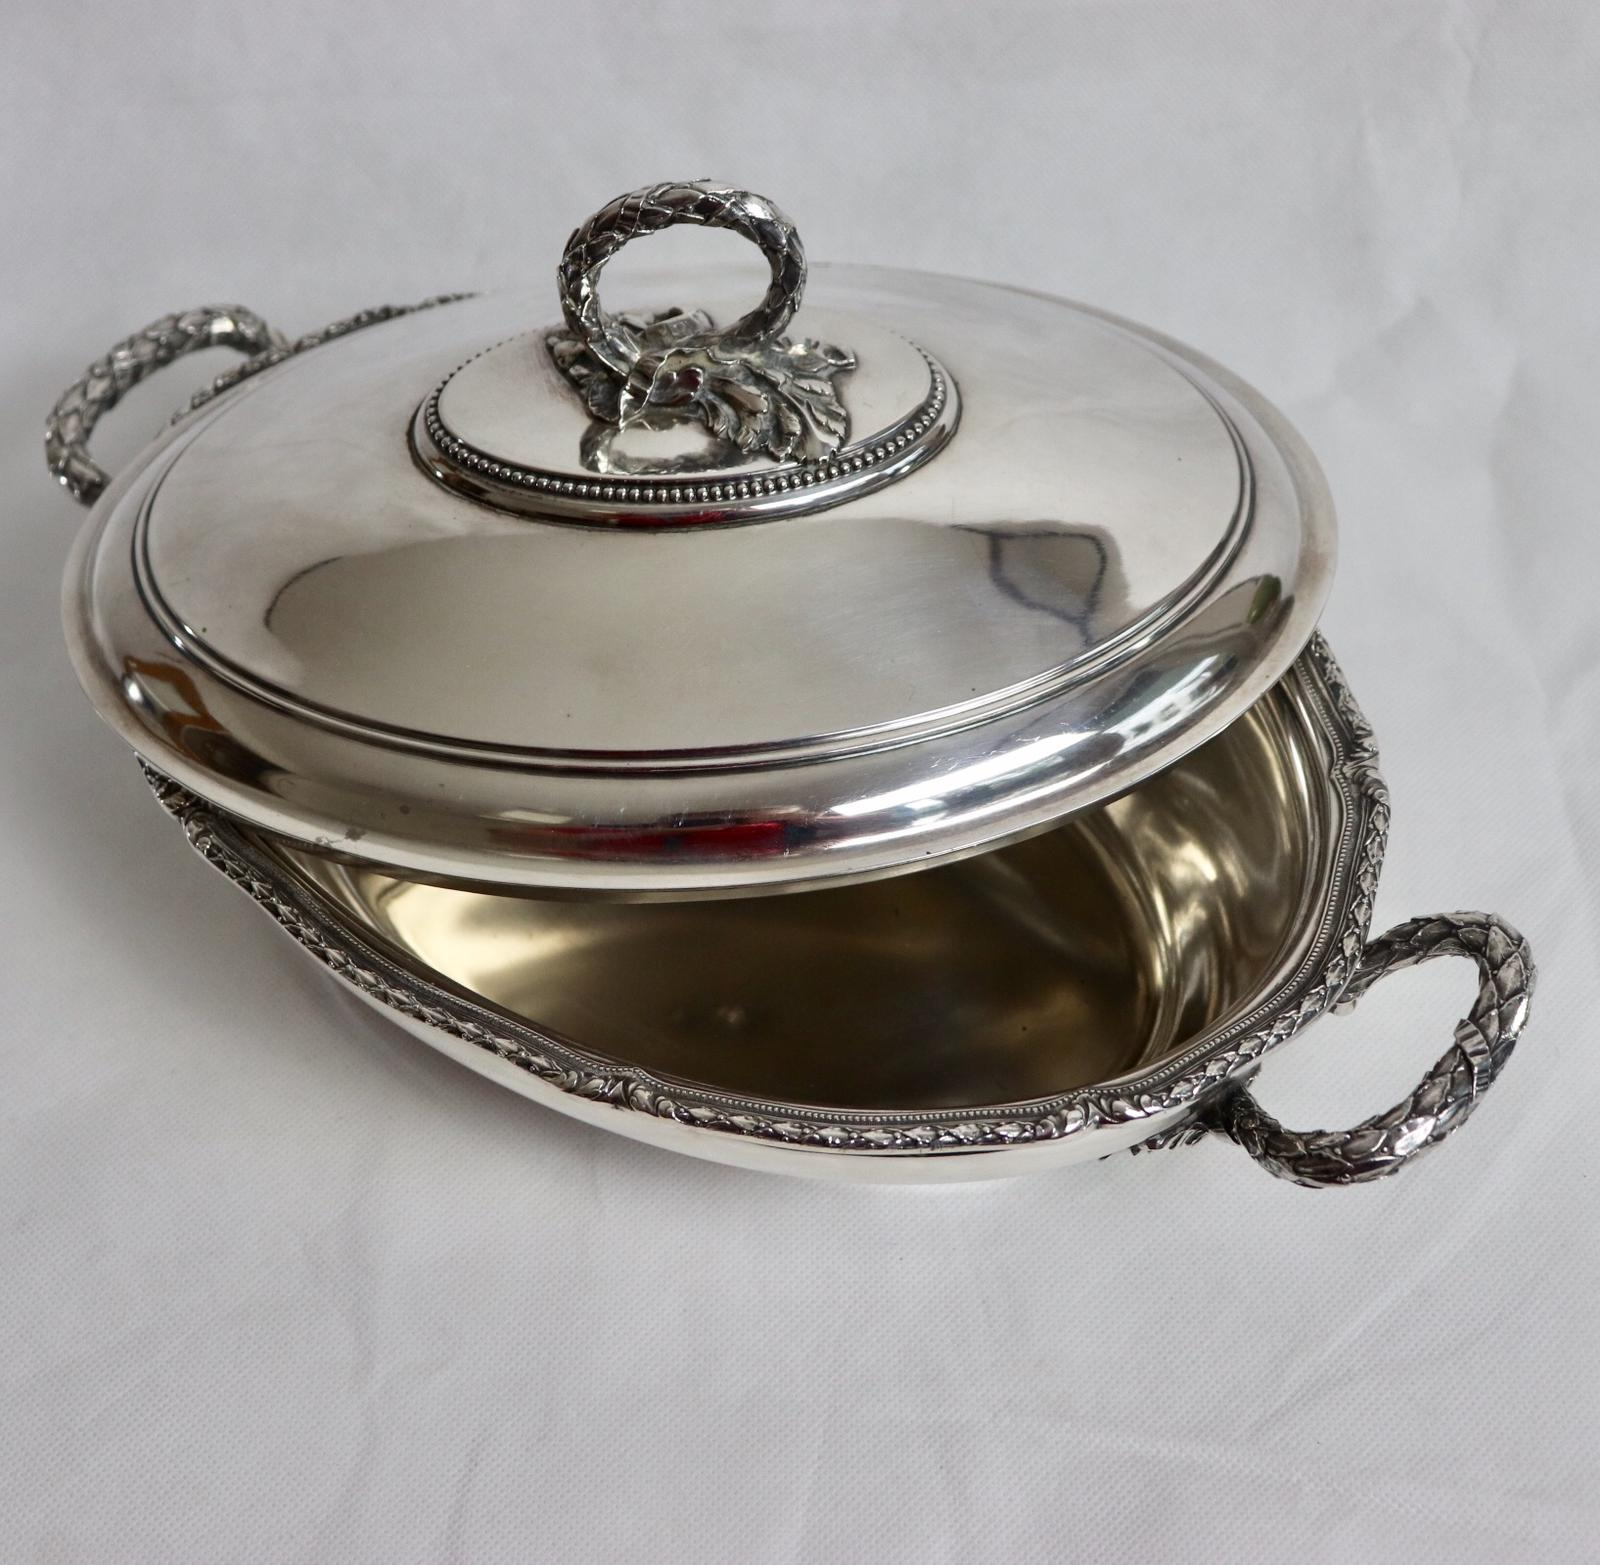 Silver Antiques Plus image (6 of 6)